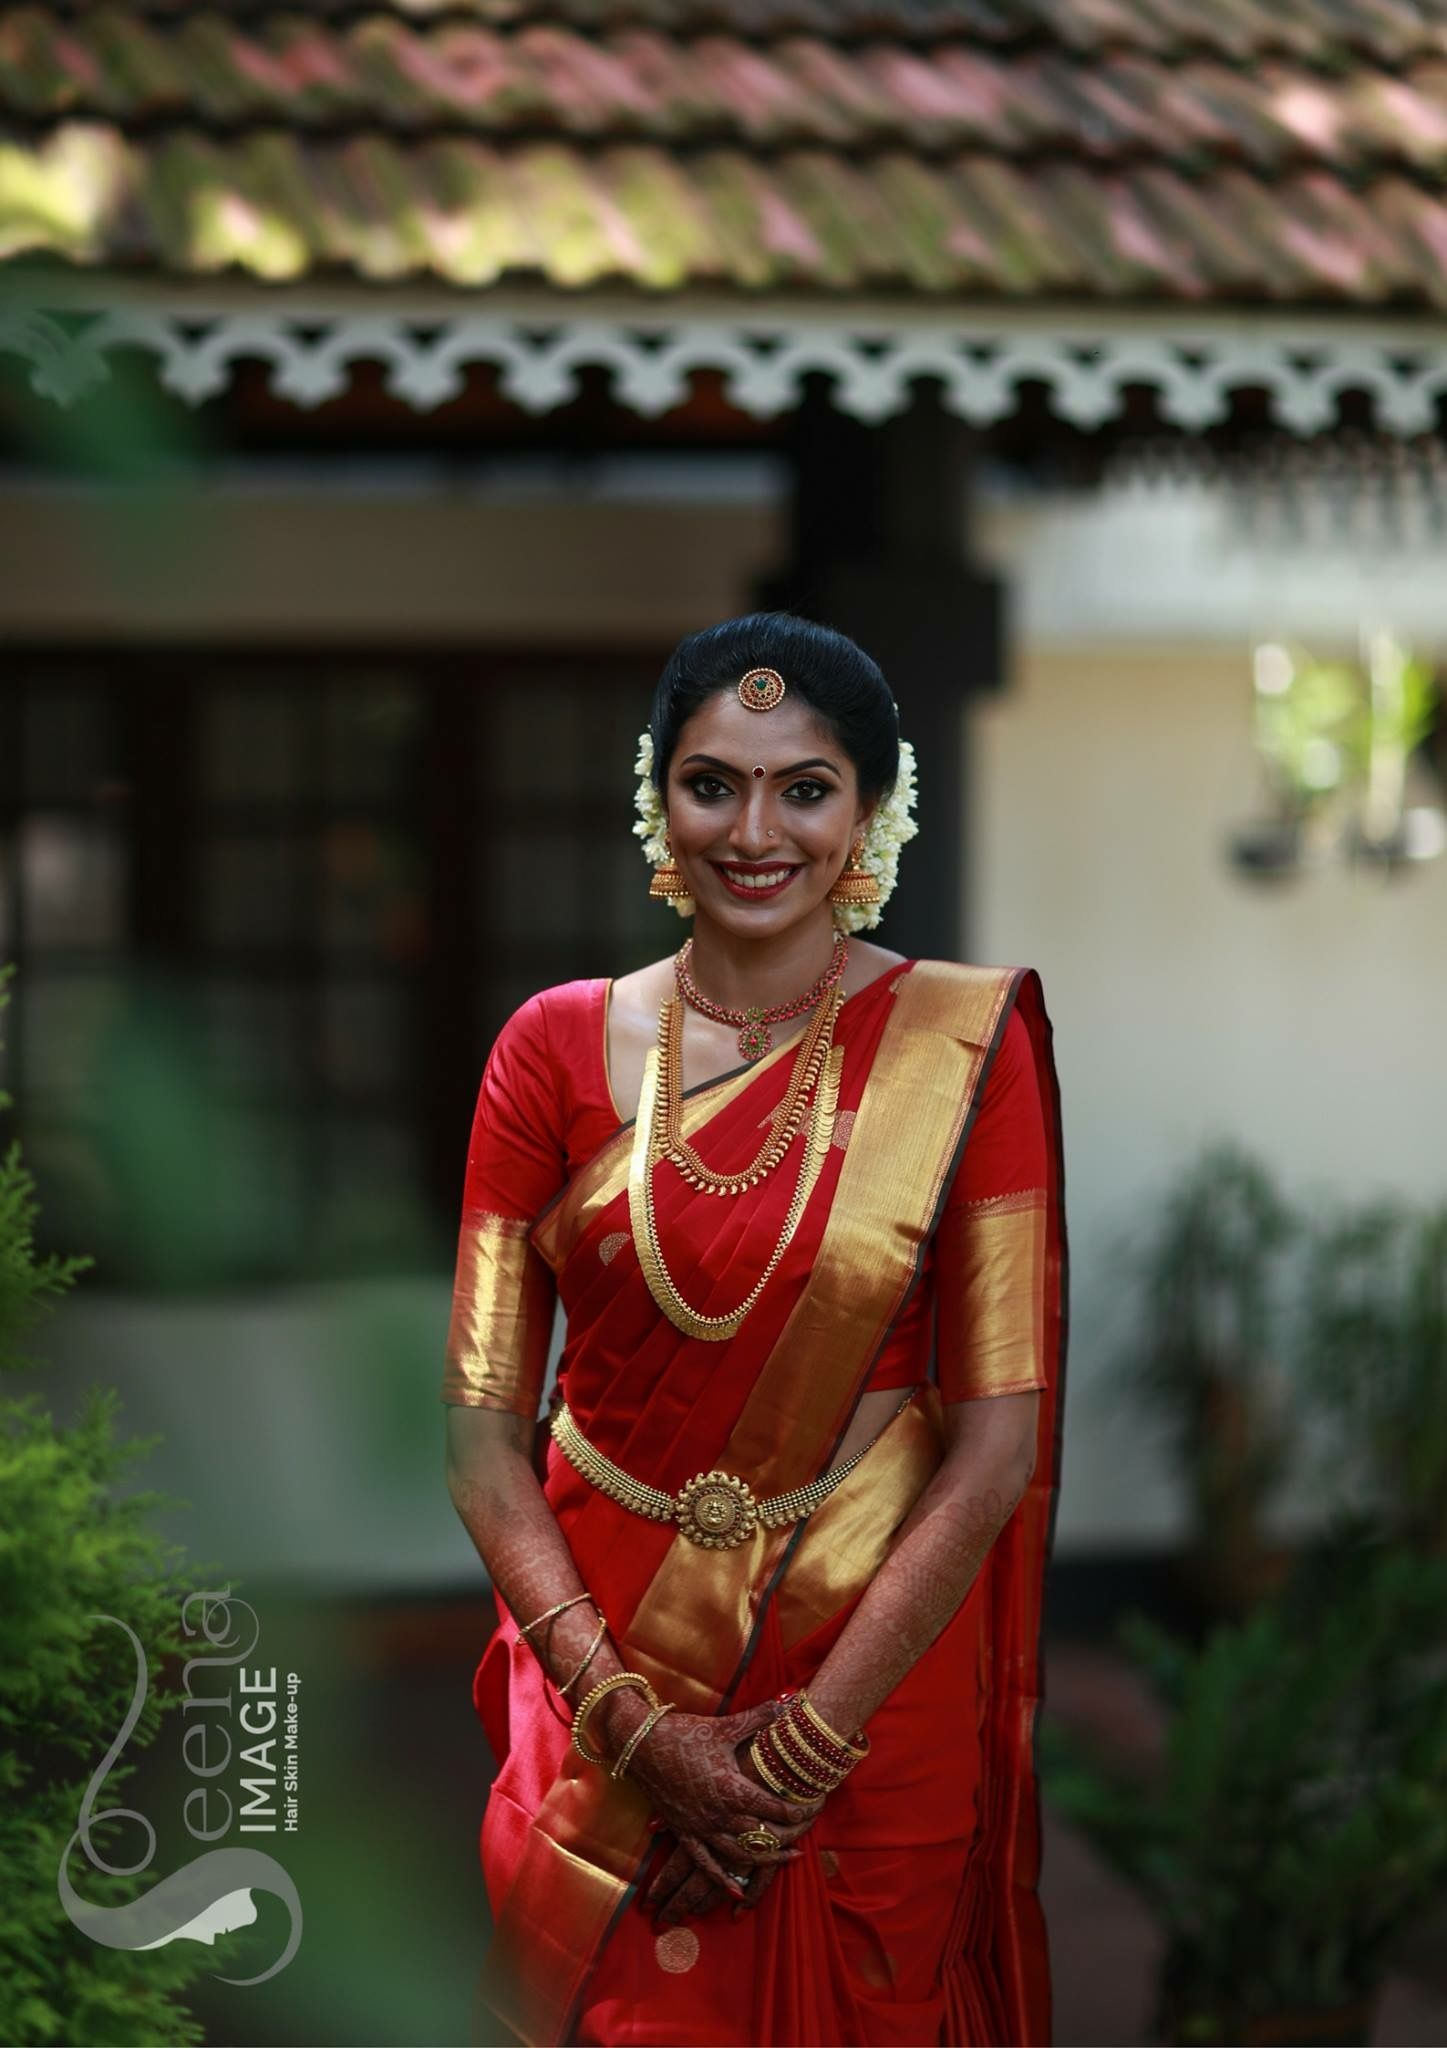 Saree jewellery images pin by rathna on getting hitched  pinterest  saree wedding indian